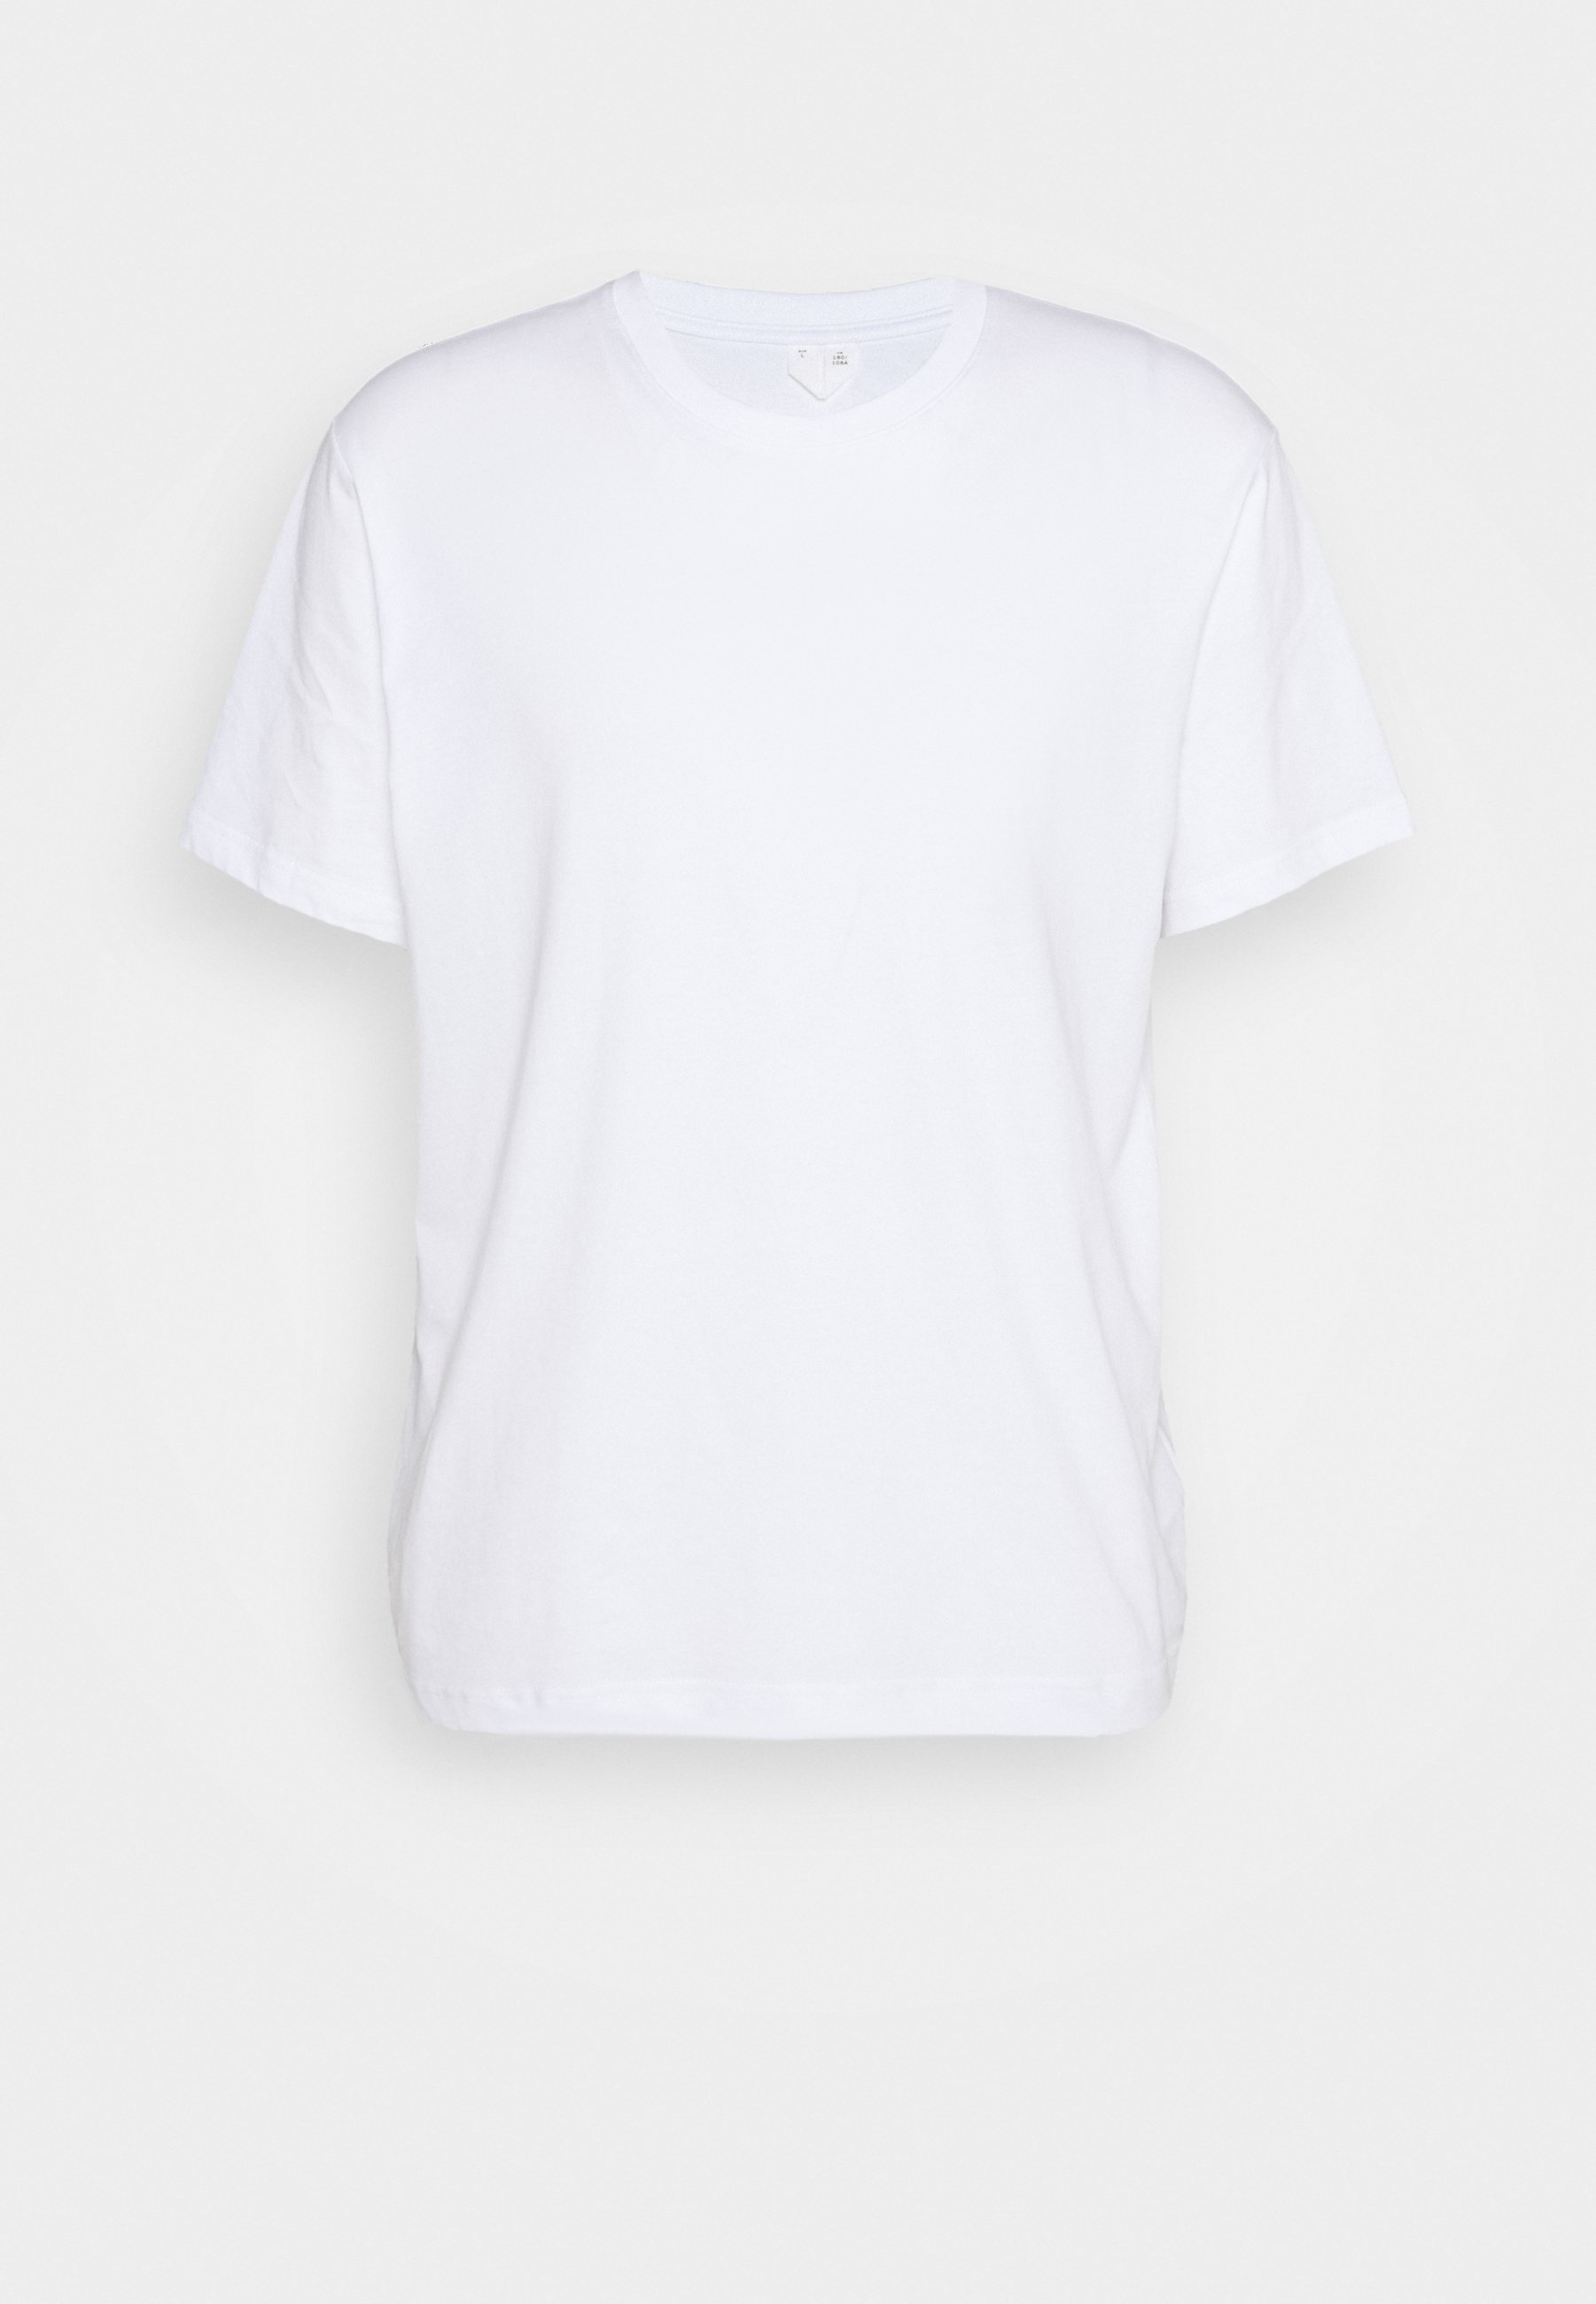 T SHIRT T shirt bas white light